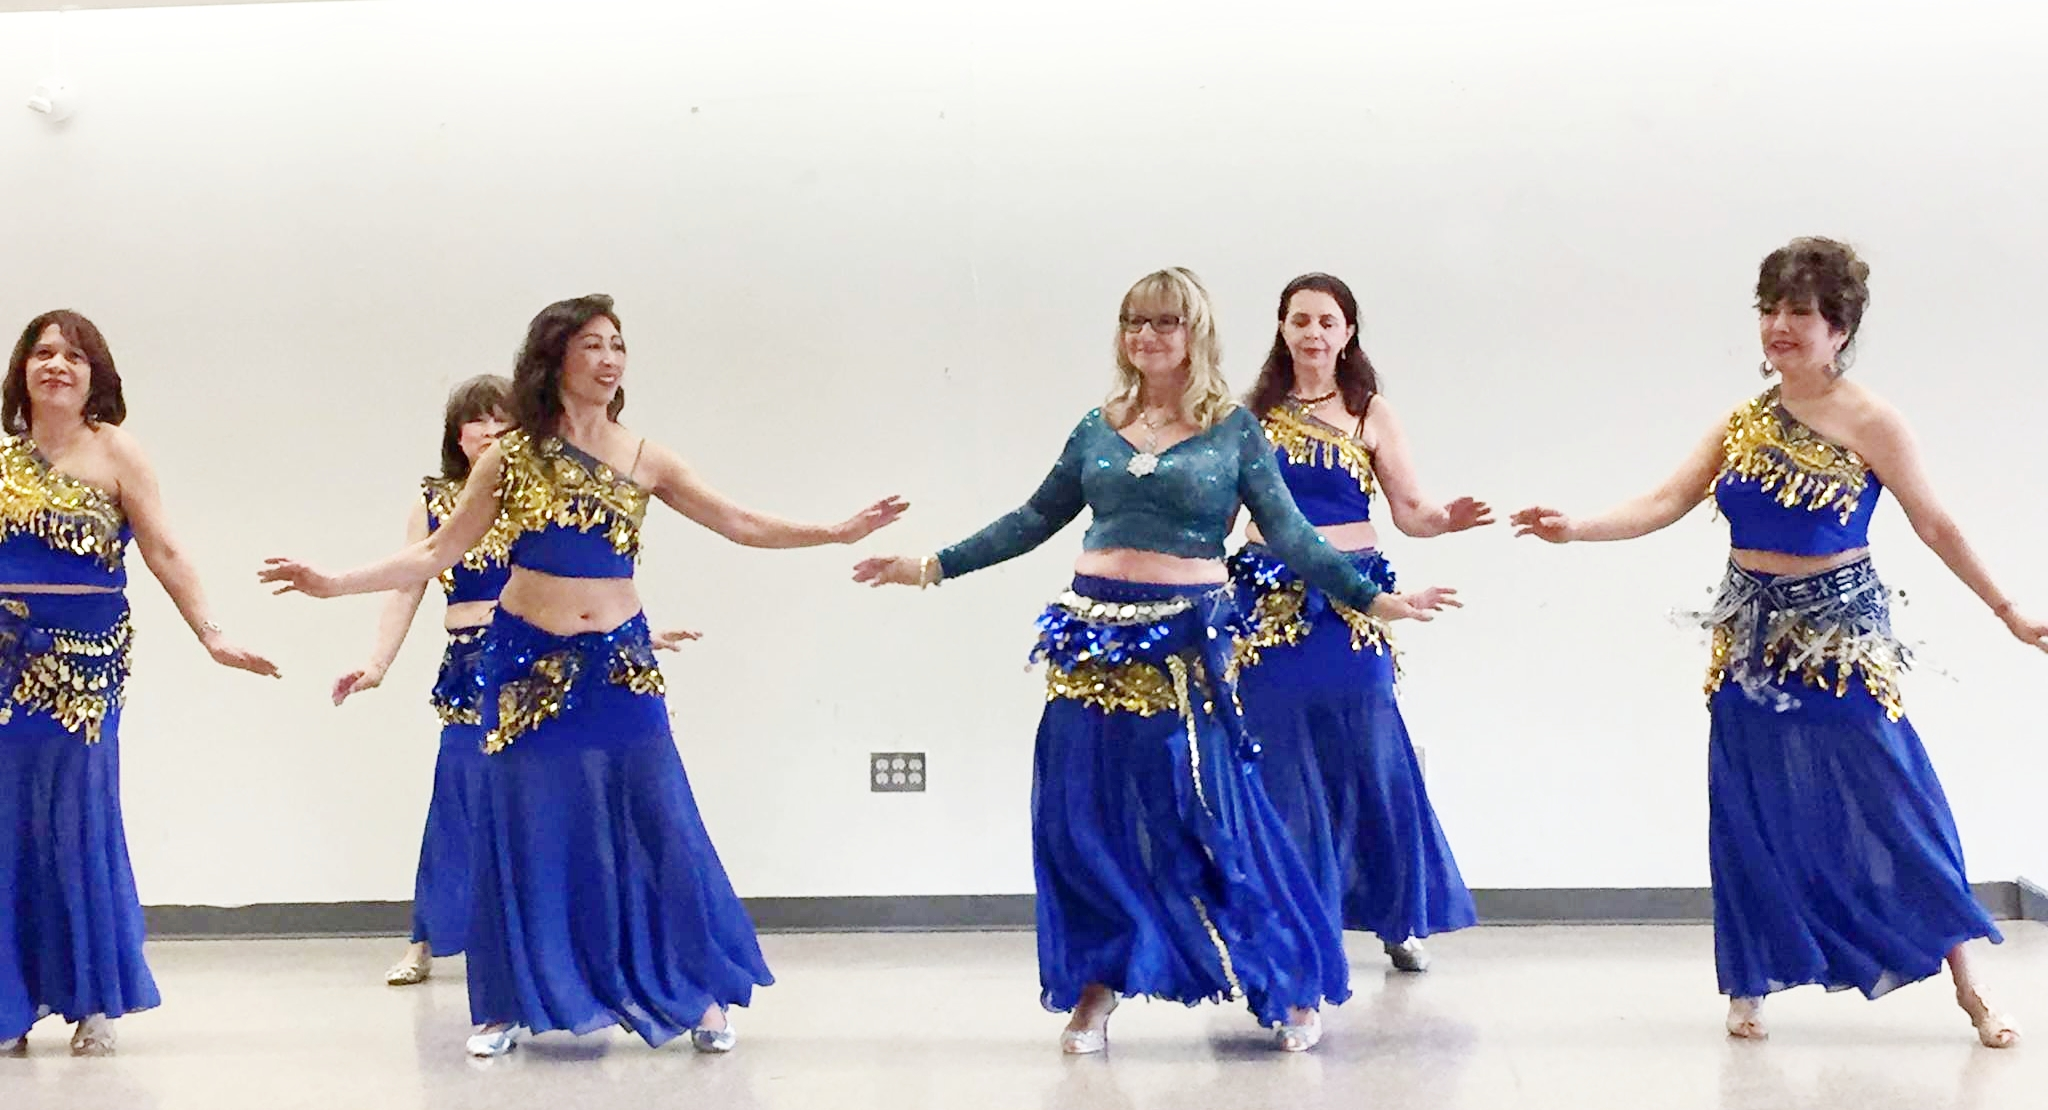 Dance Classes Active Adult Centre Of Mississauga - Belly Dance